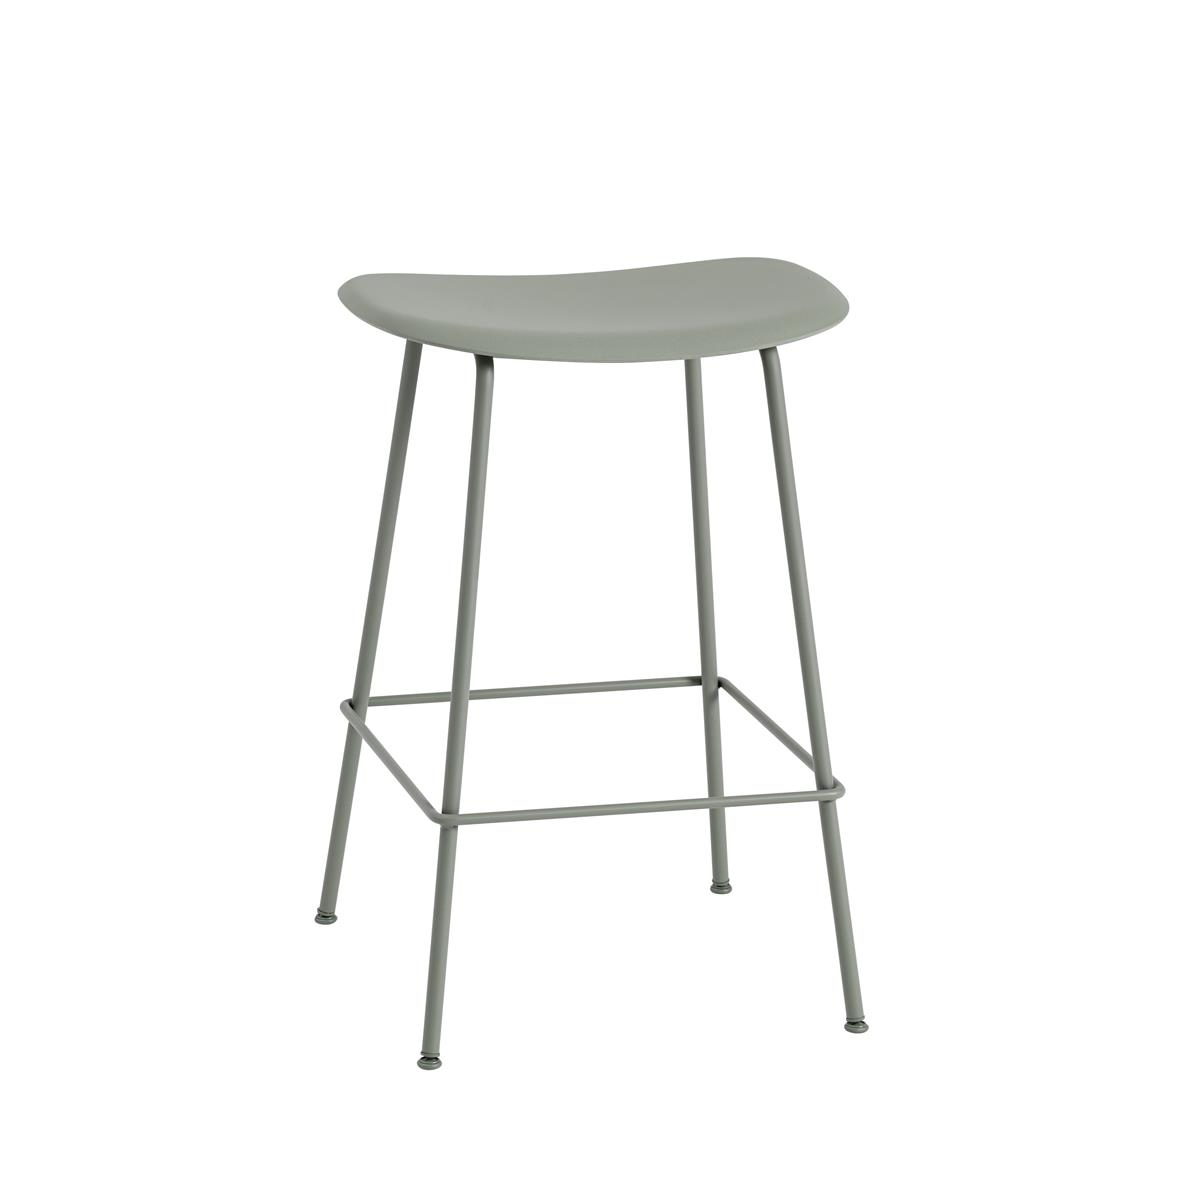 Fiber Bar Stool / Tube Base H65 - Dusty Green